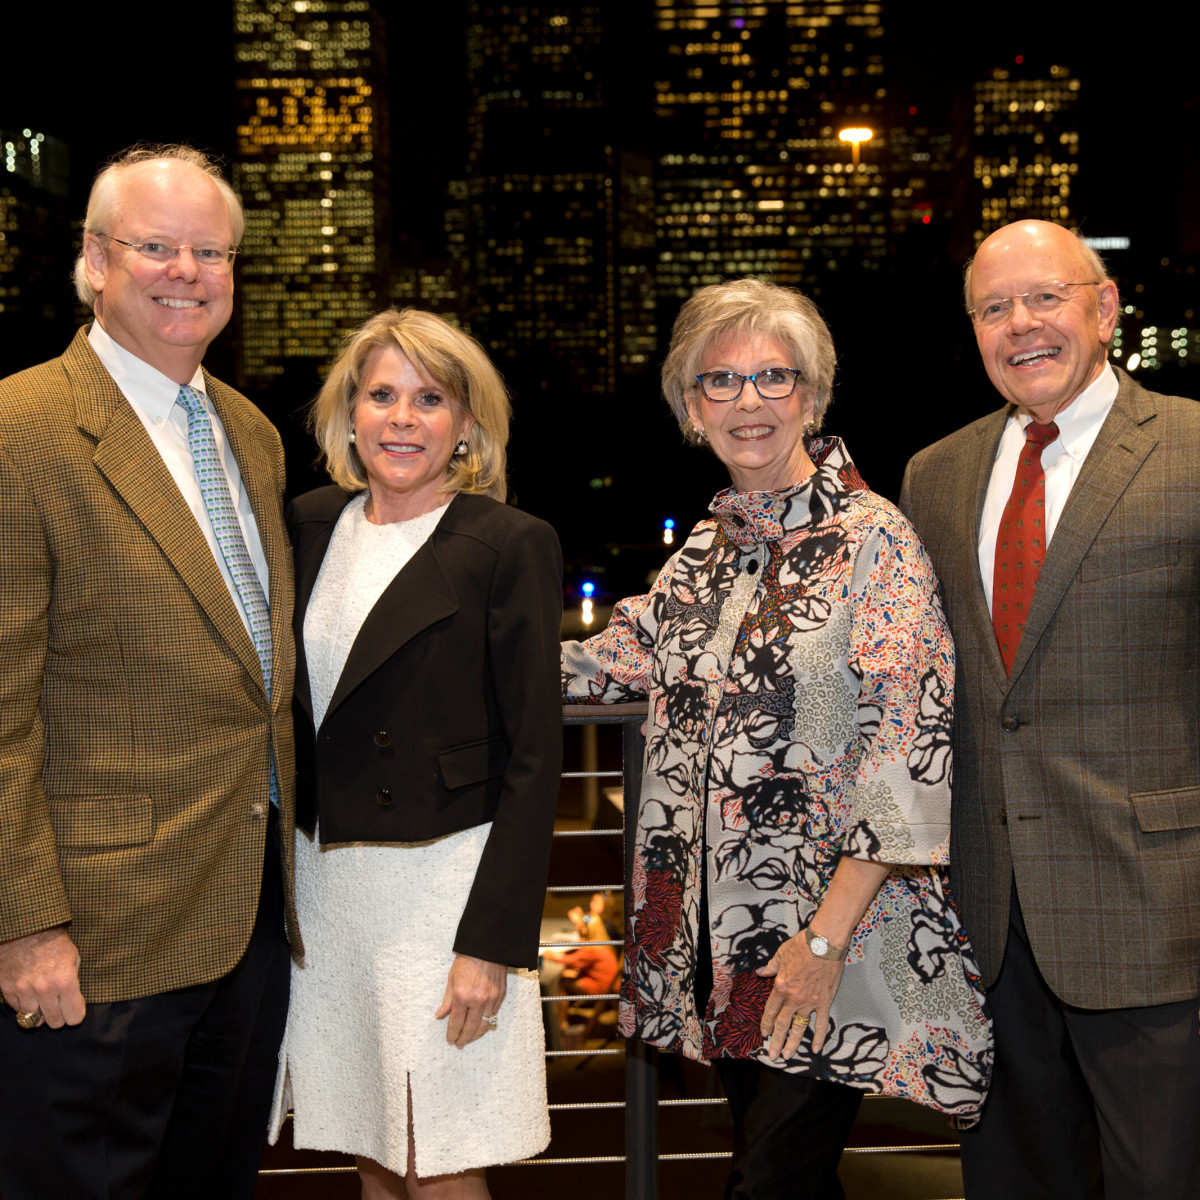 Houston, Buffalo Bayou Preservation gala, Nov. 2016, Brady Carruth, Zane Carruth, Gayle Eury, Bob Eury